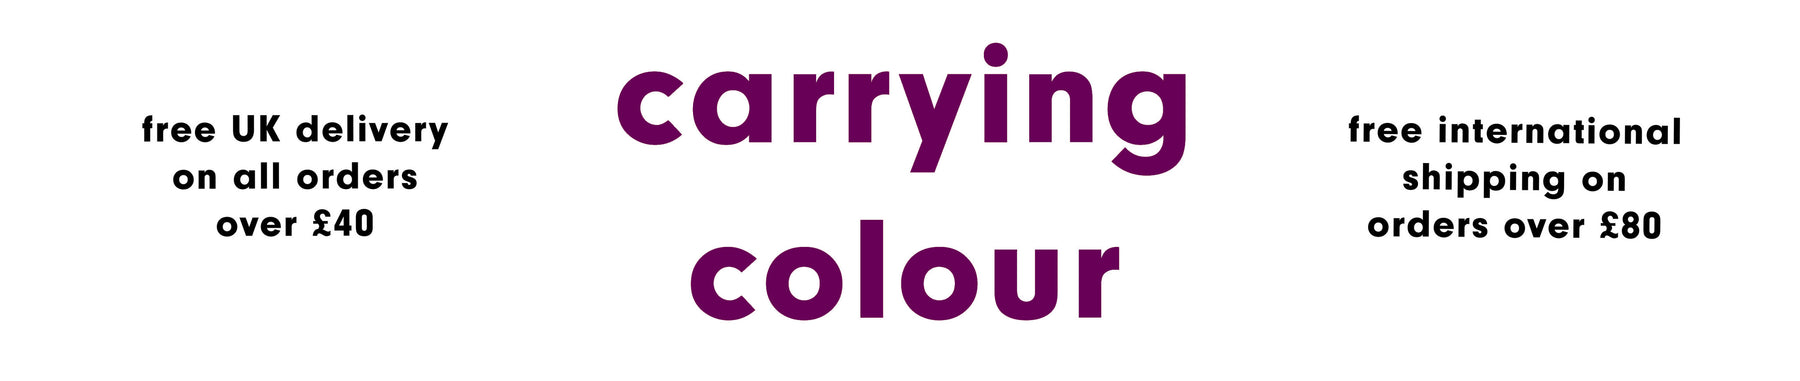 Carrying Colour